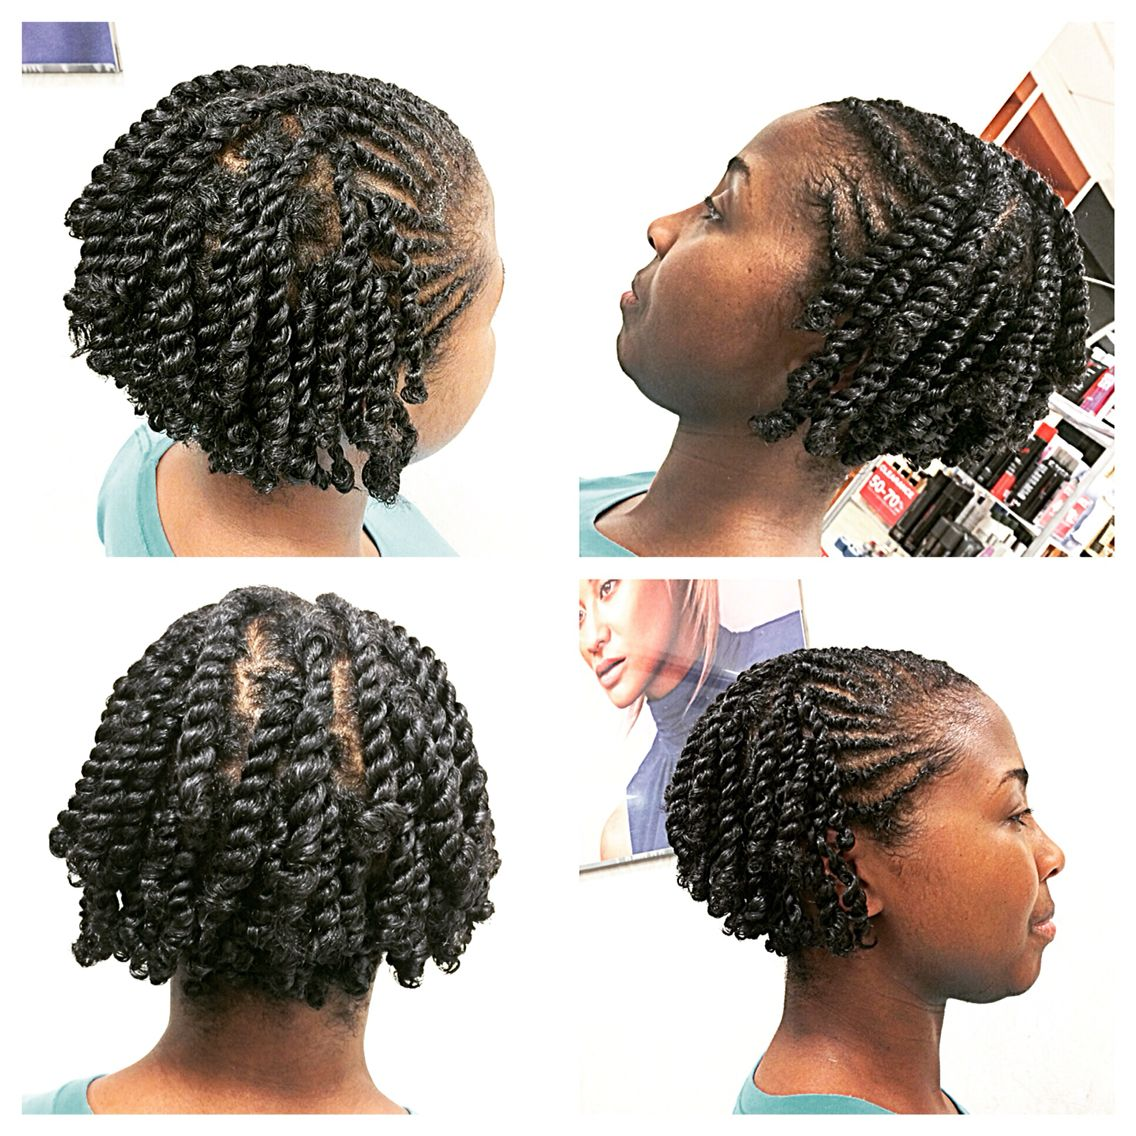 Low Maintenance Summer Workout Style For Naturally Curly Hair Twostrandtwist Flattwist Asymme Flat Twist Hairstyles Natural Hair Styles Hair Twist Styles